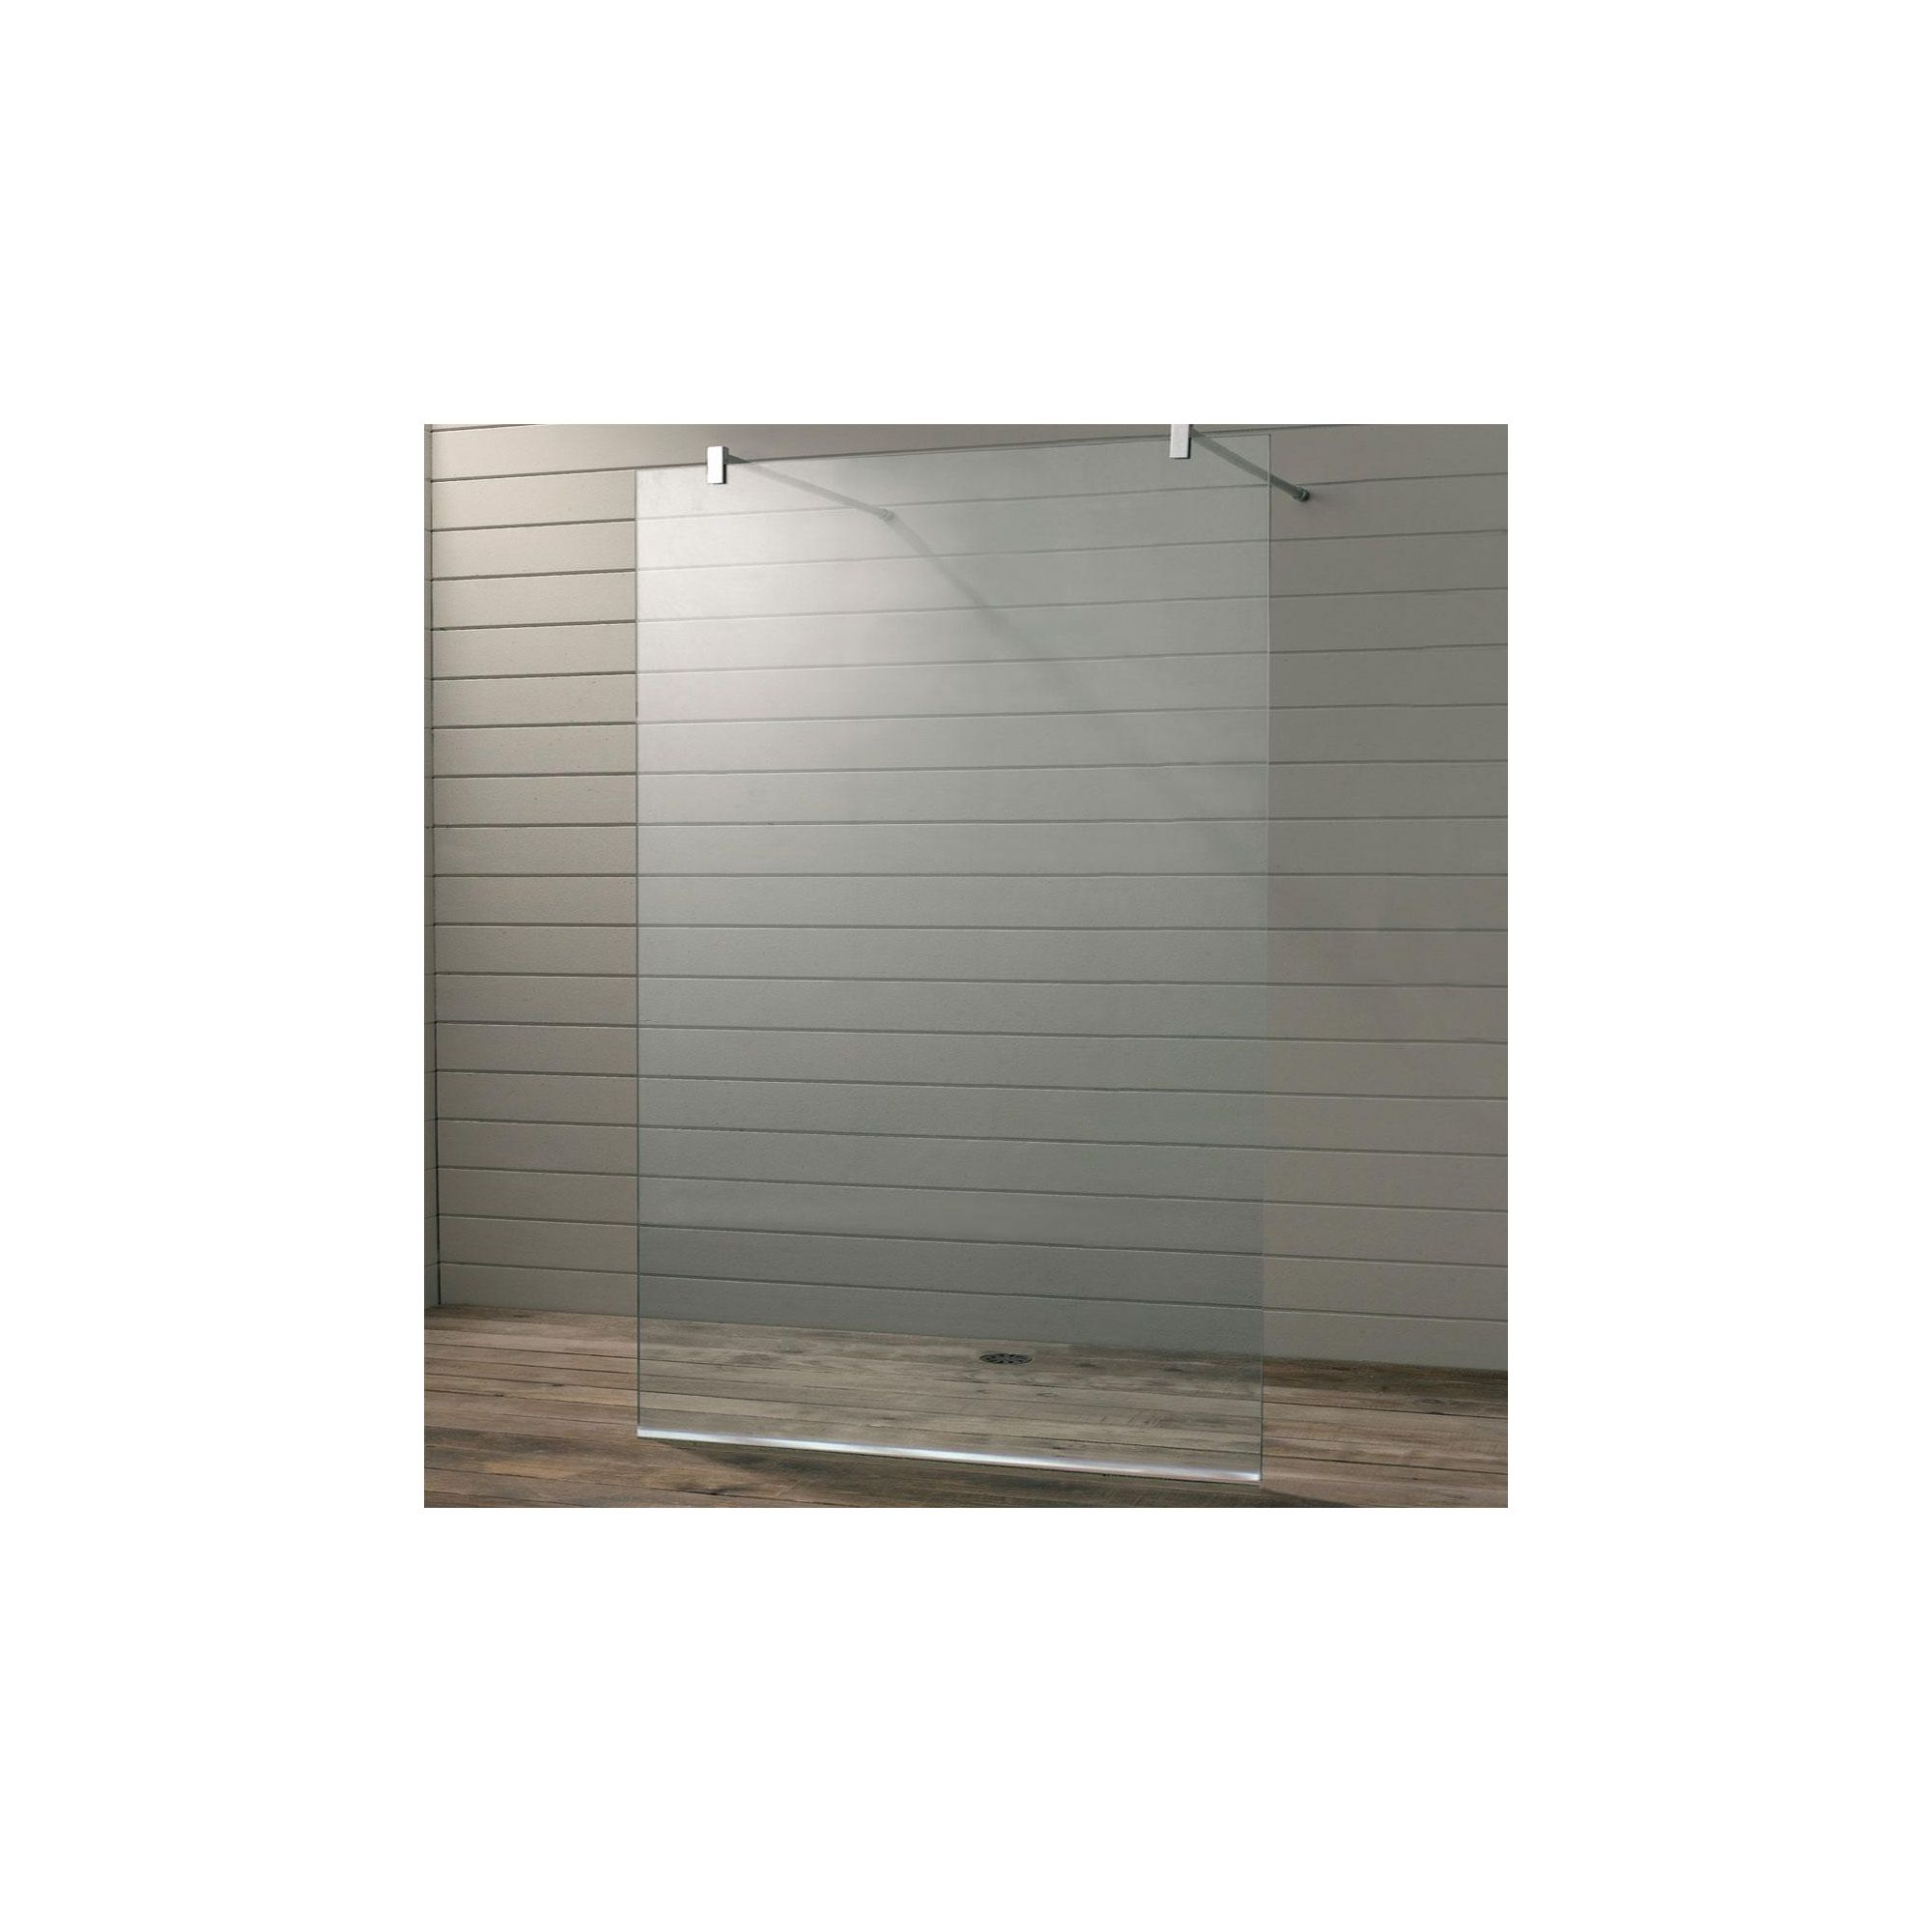 Duchy Premium Wet Room Glass Shower Panel, 700mm x 700mm, 10mm Glass, Low Profile Tray at Tesco Direct